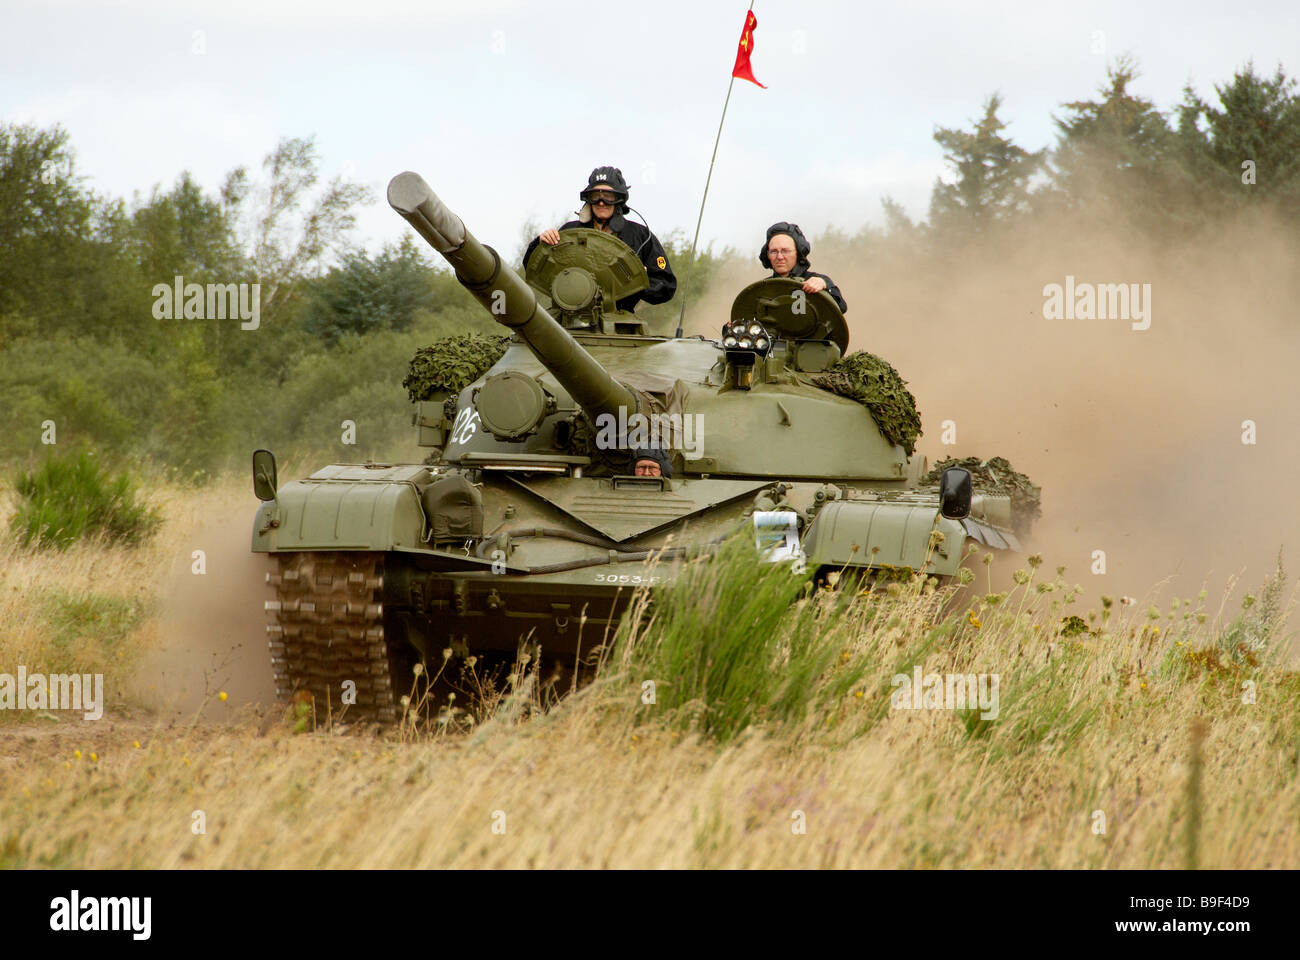 Russian T72 Tank advancing during military show in Holstebro Denmark October 2007 - Stock Image